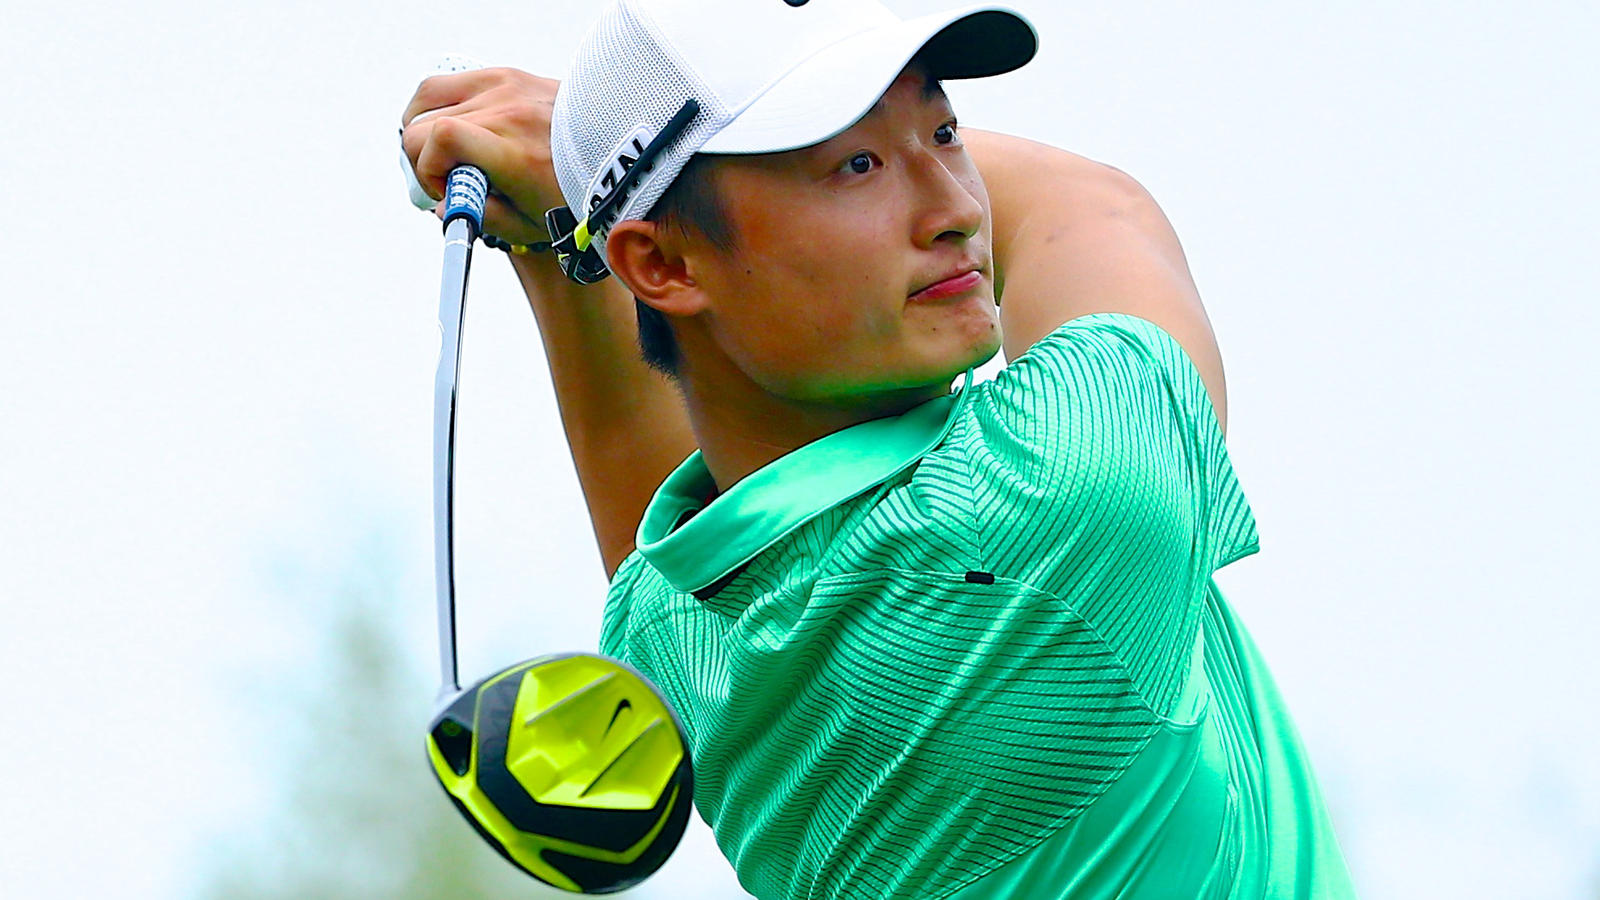 Li Wins with the New Vapor Pro Driver